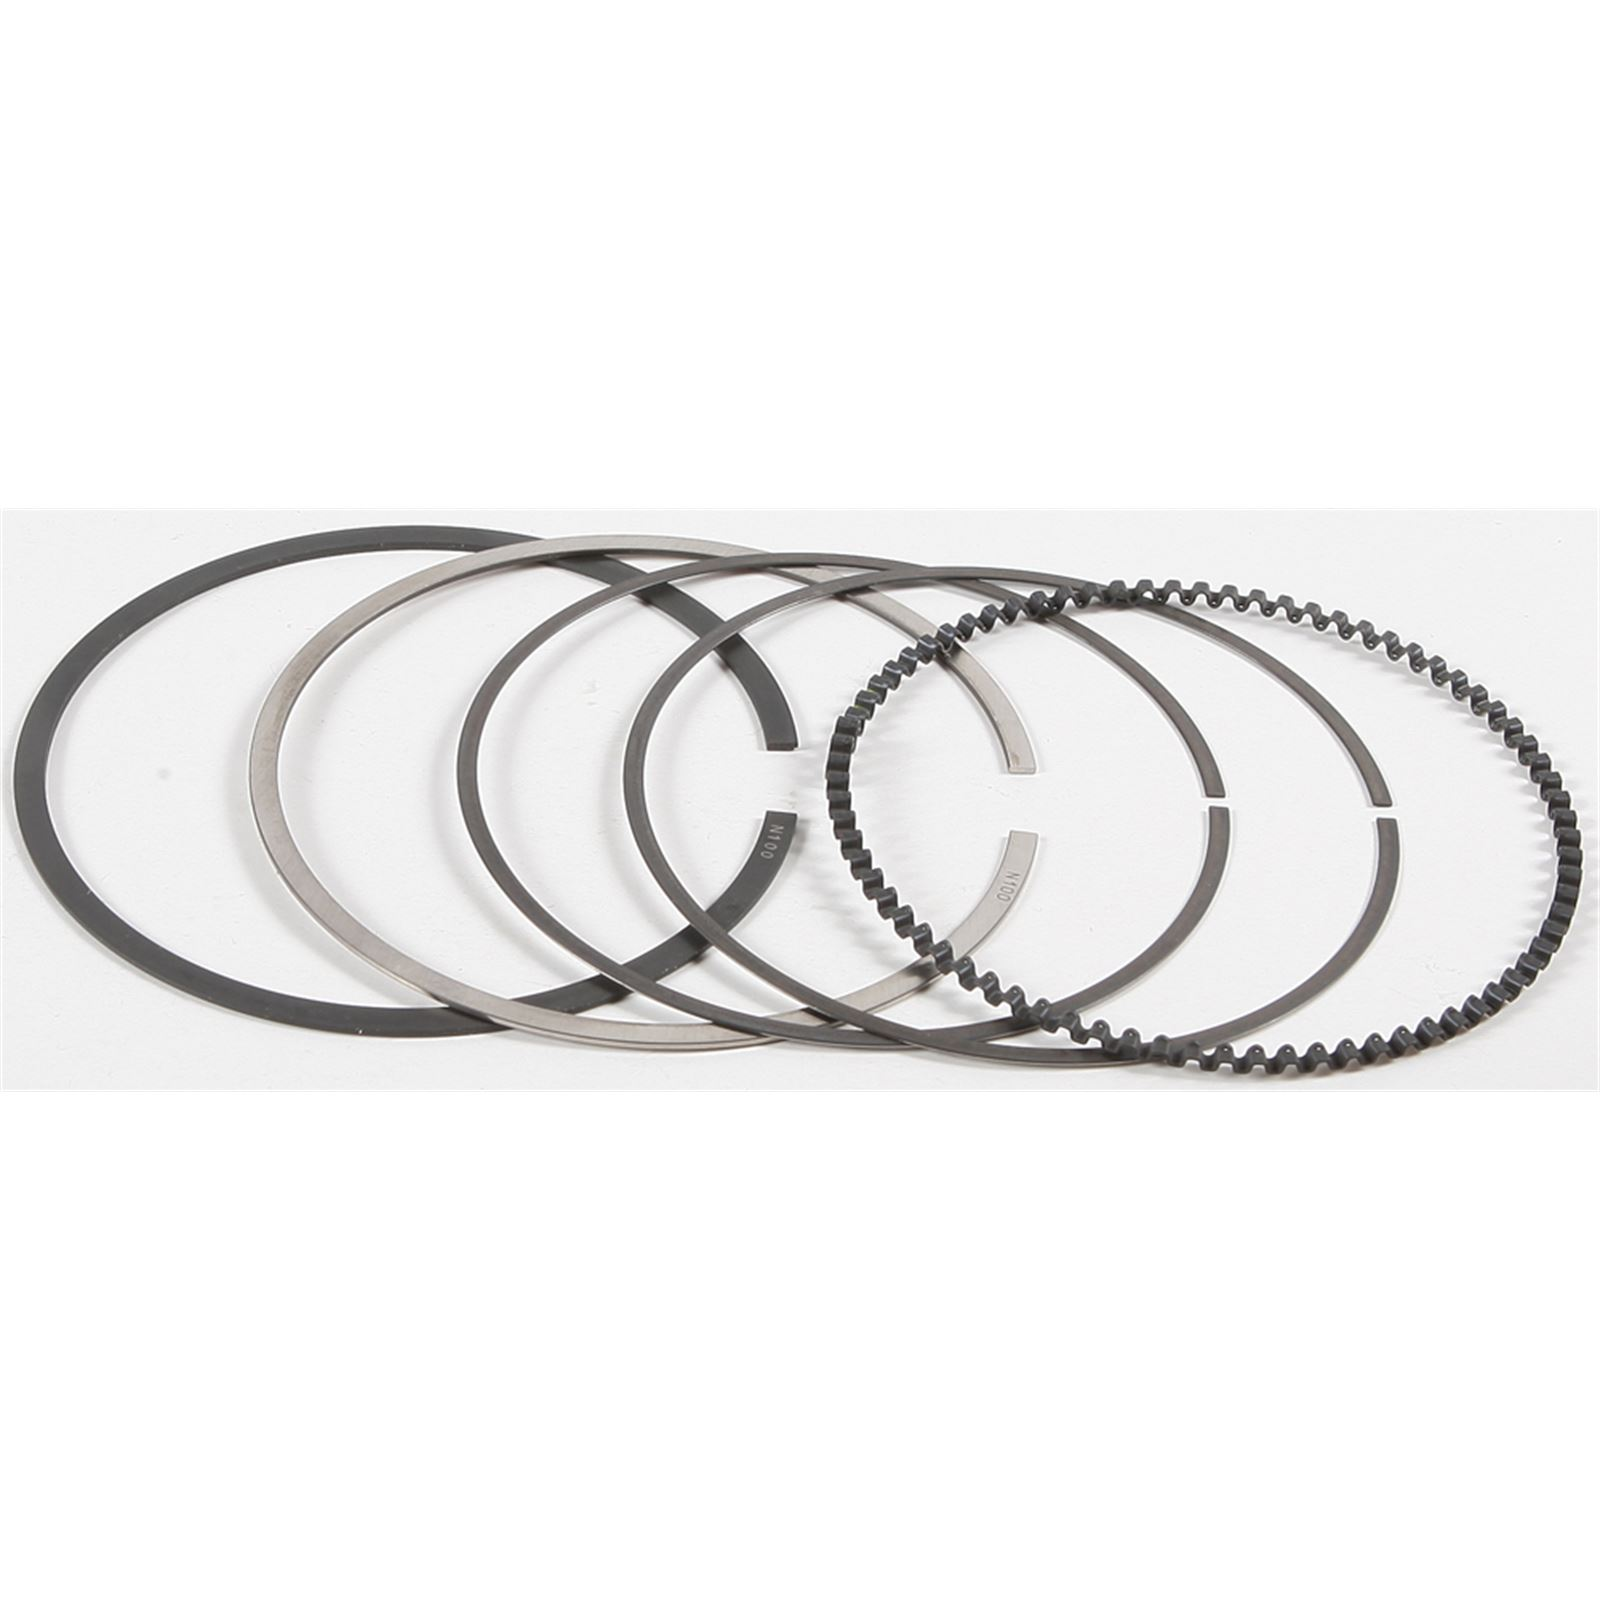 Wiseco Ring Set